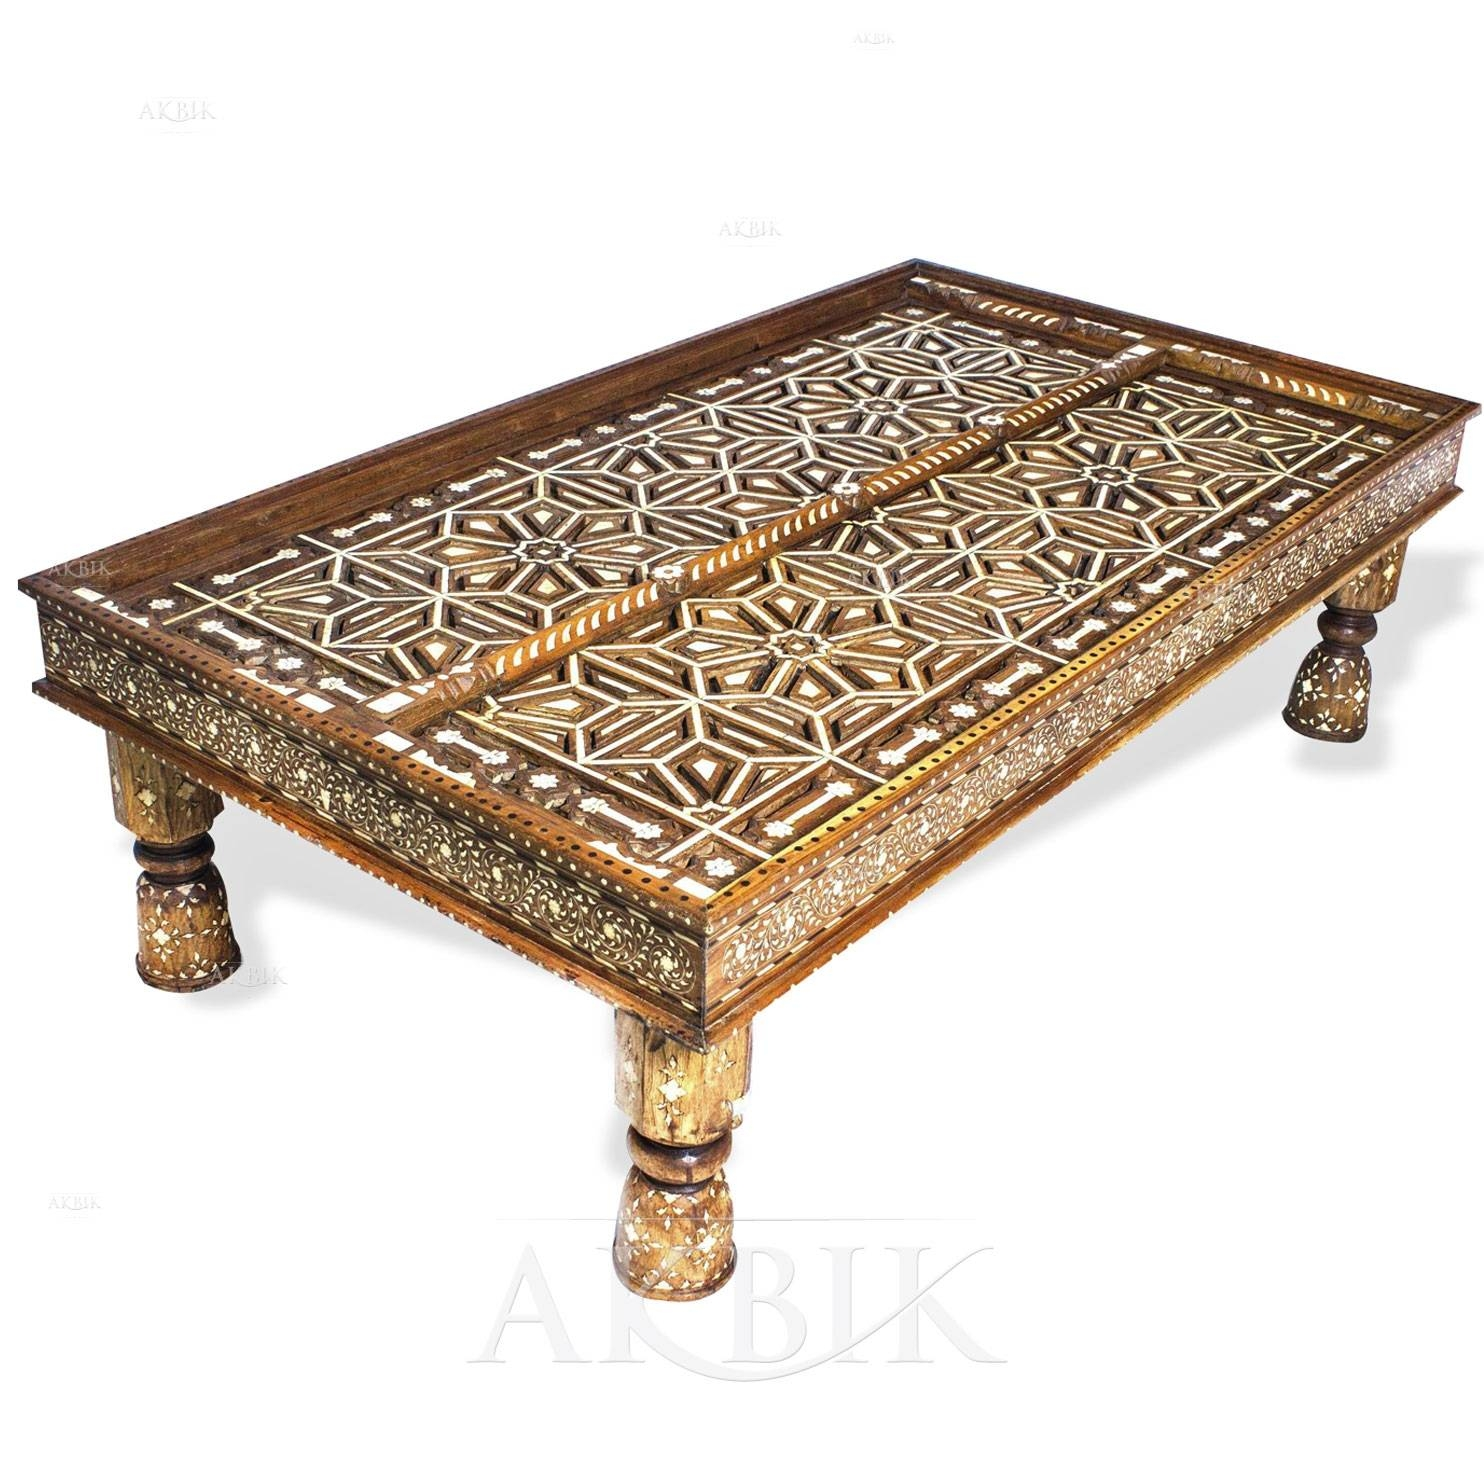 Mediterranean, Levantine & Syrian Furniture Inlaid With Mother Of pertaining to Mother Of Pearl Coffee Tables (Image 19 of 30)